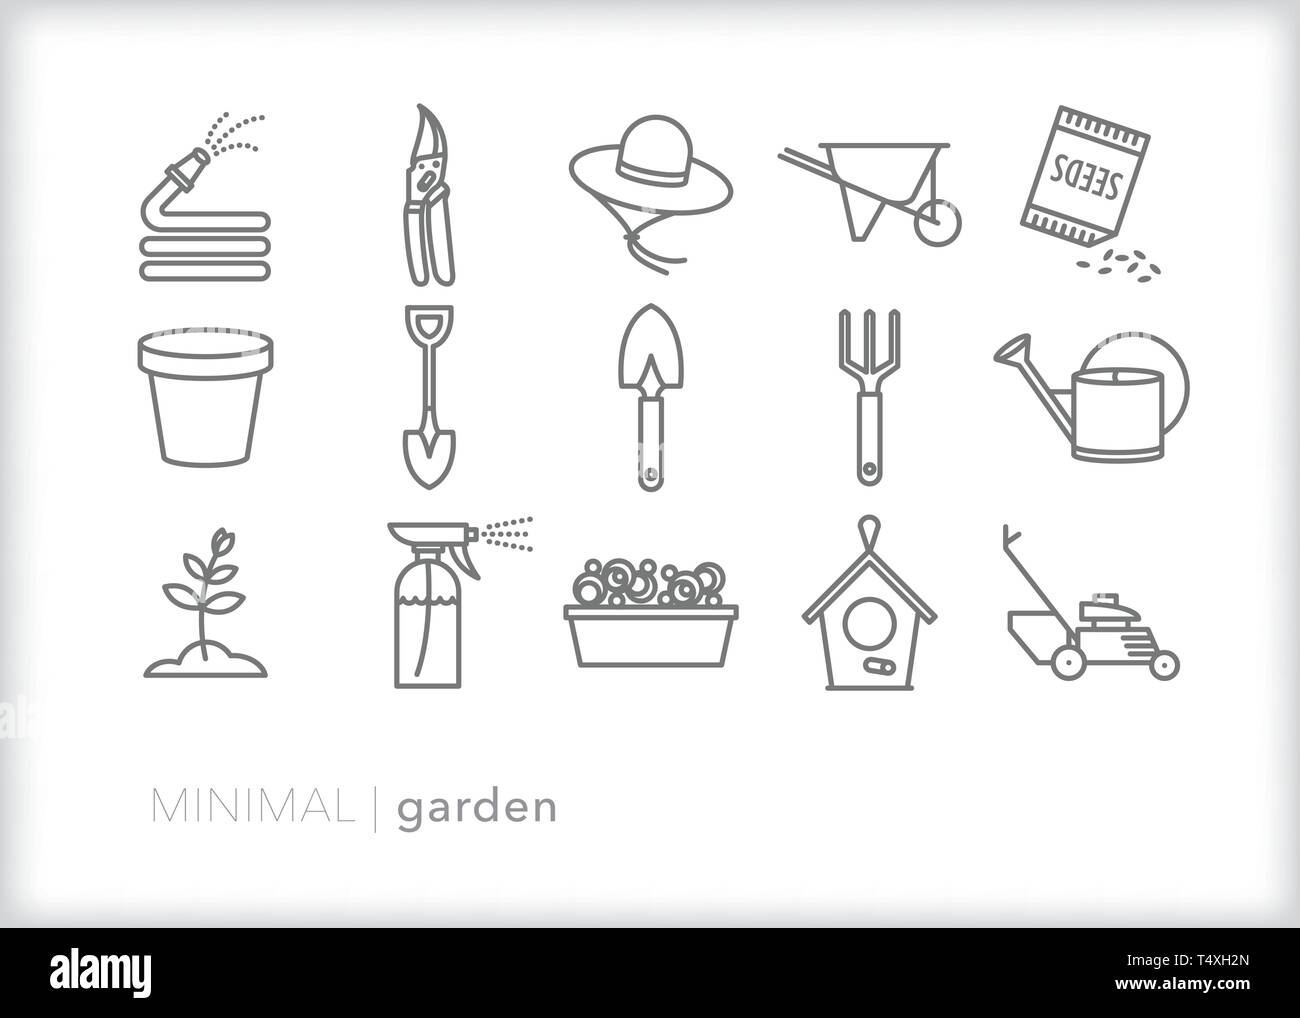 Set of 15 garden line icons for tending to a home garden or lawn including tools, hose, pot, wheelbarrow, flowers, lawn mower and more - Stock Vector